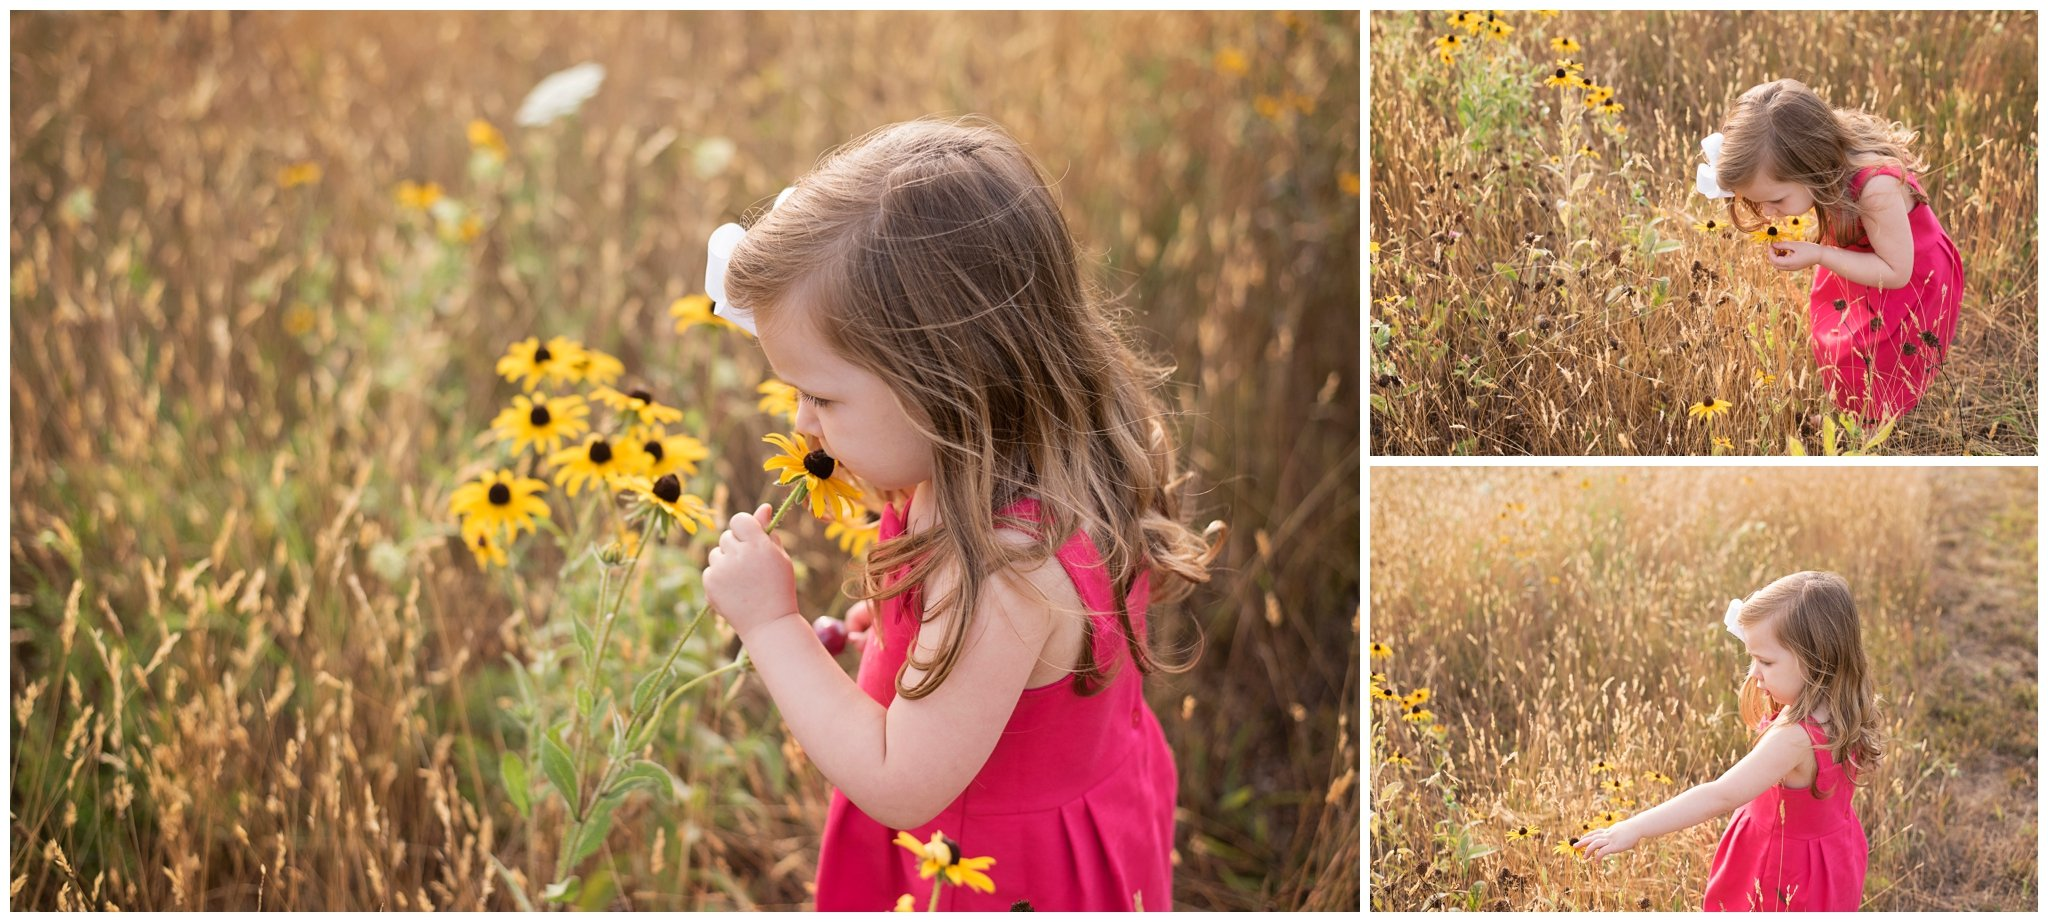 capturing your sweet child's personality during your outdoor family session